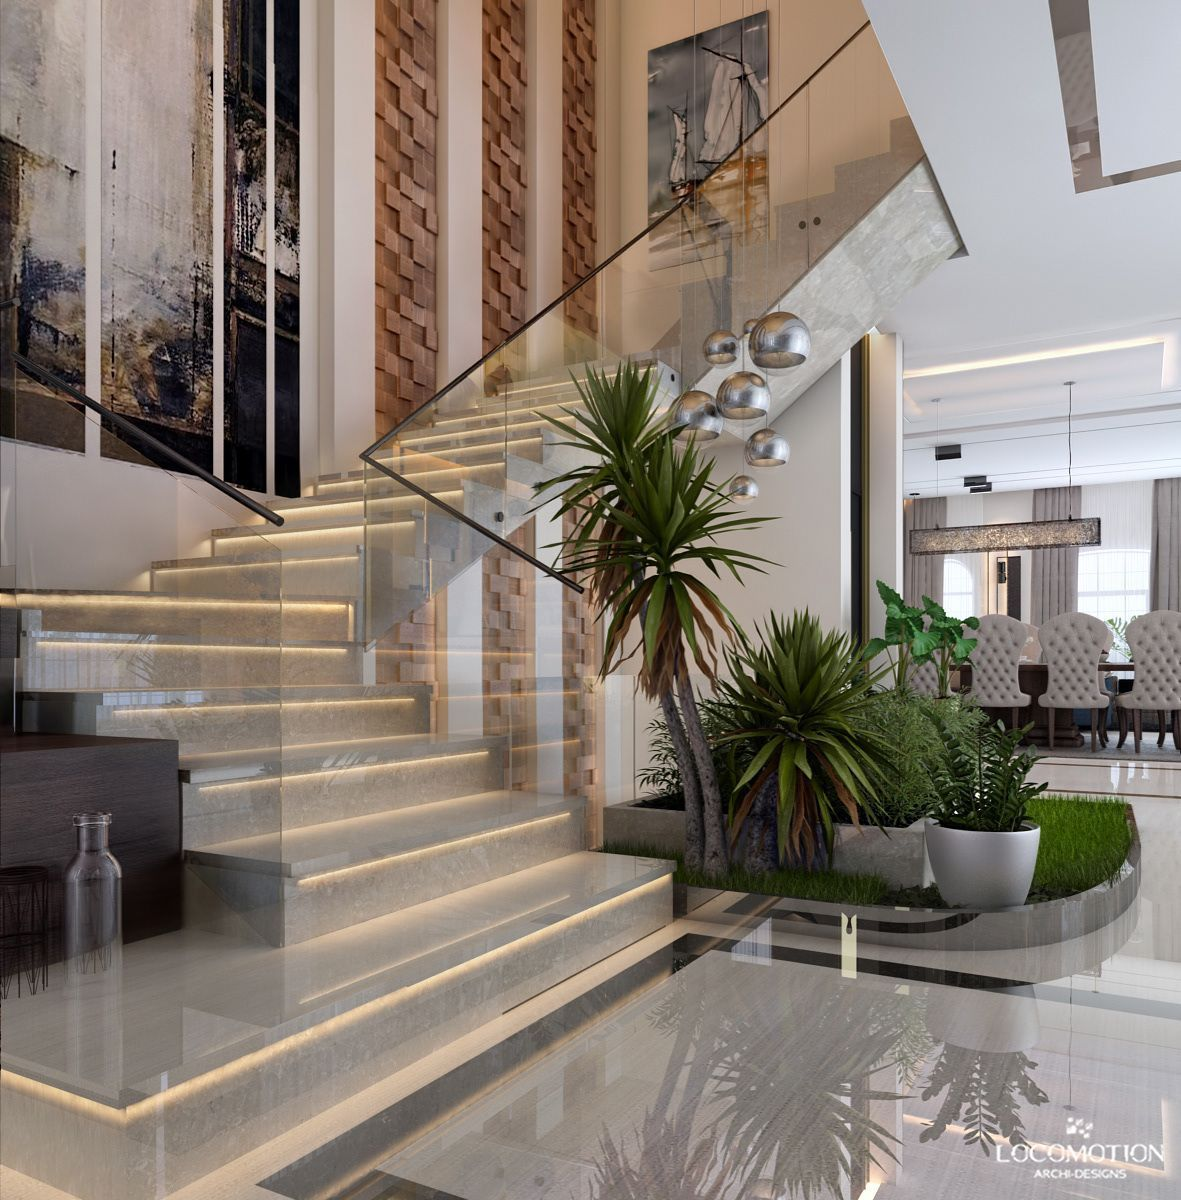 Villa Reception Living The Laptop Lifestyle And Learning How To Make Good Money Online From Home Click The House Designs Exterior Stairs Design House Exterior